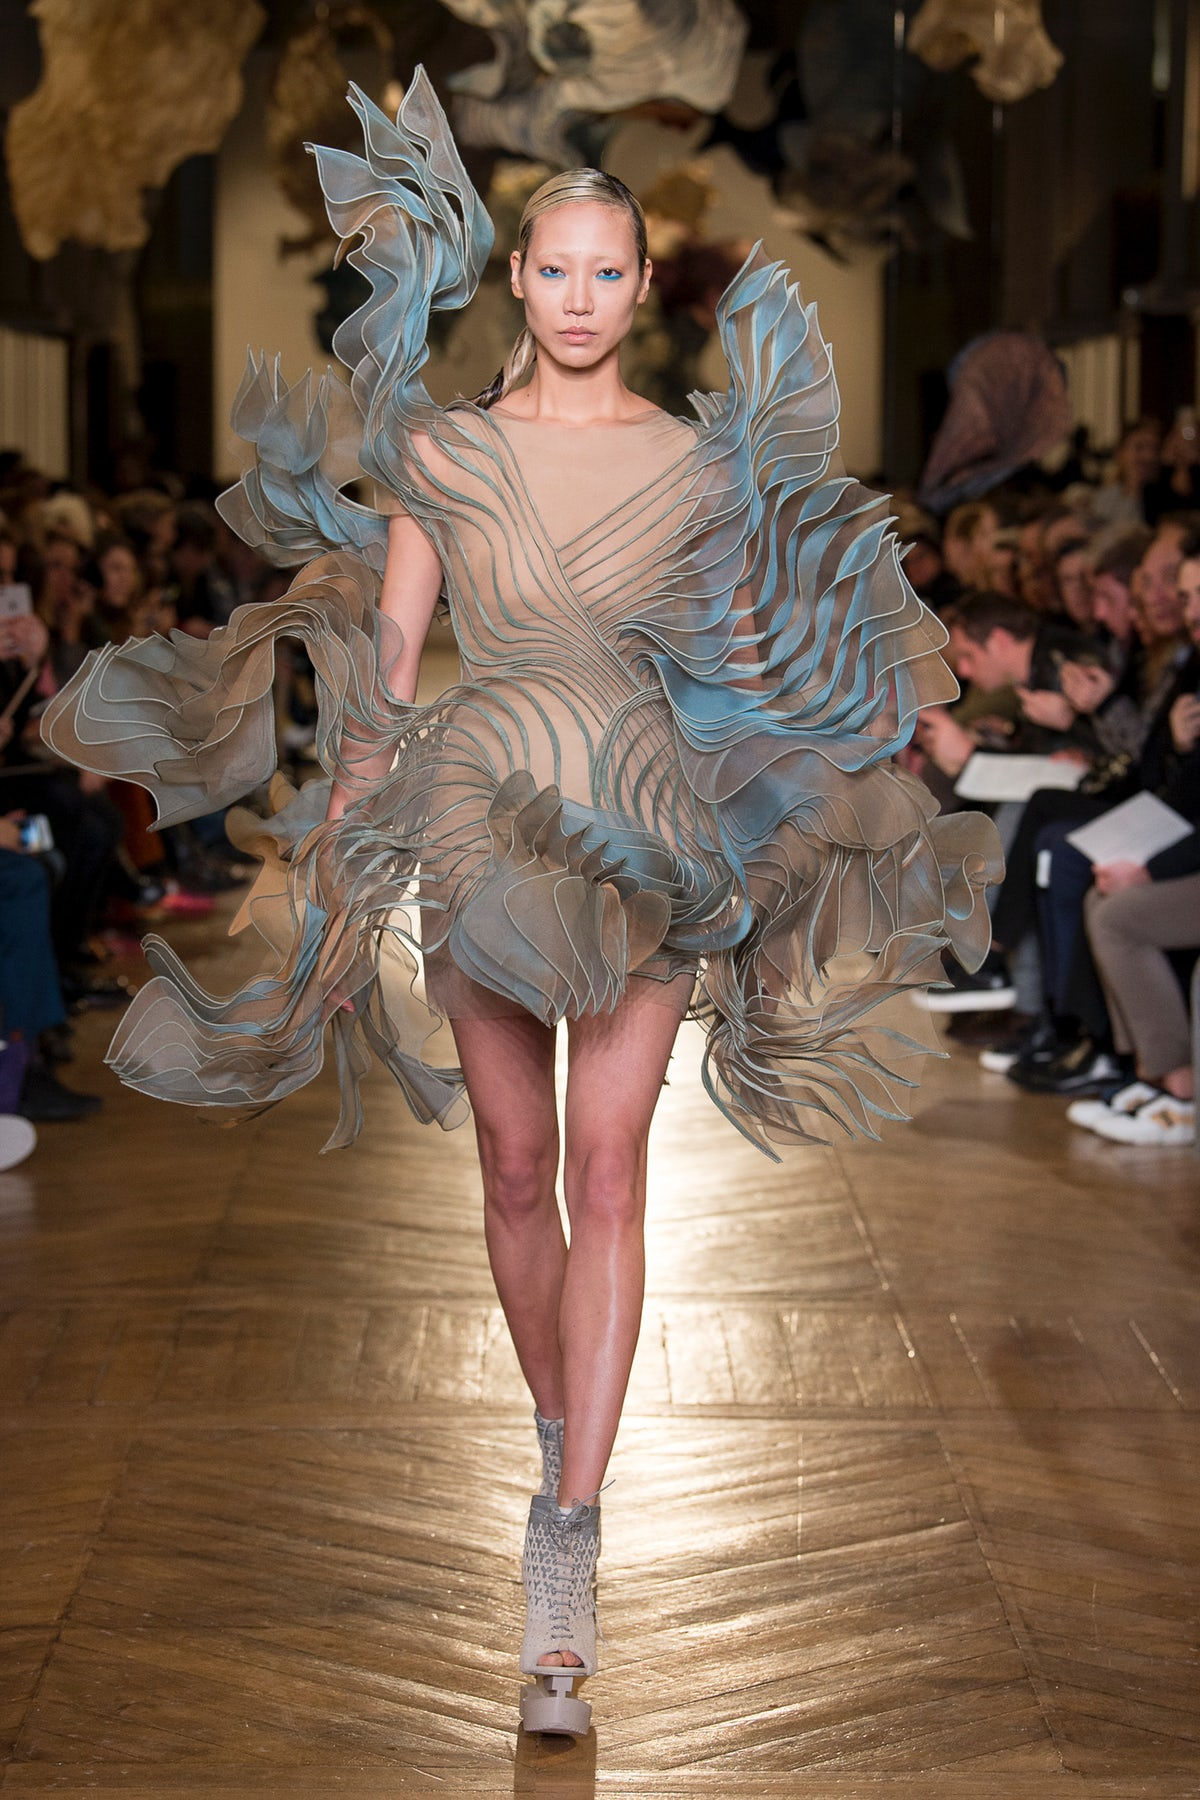 What do you think about the latest Iris Van Herpen collection? https://t.co/yIbY8jphC6 #BoFW https://t.co/605BSpOBxc